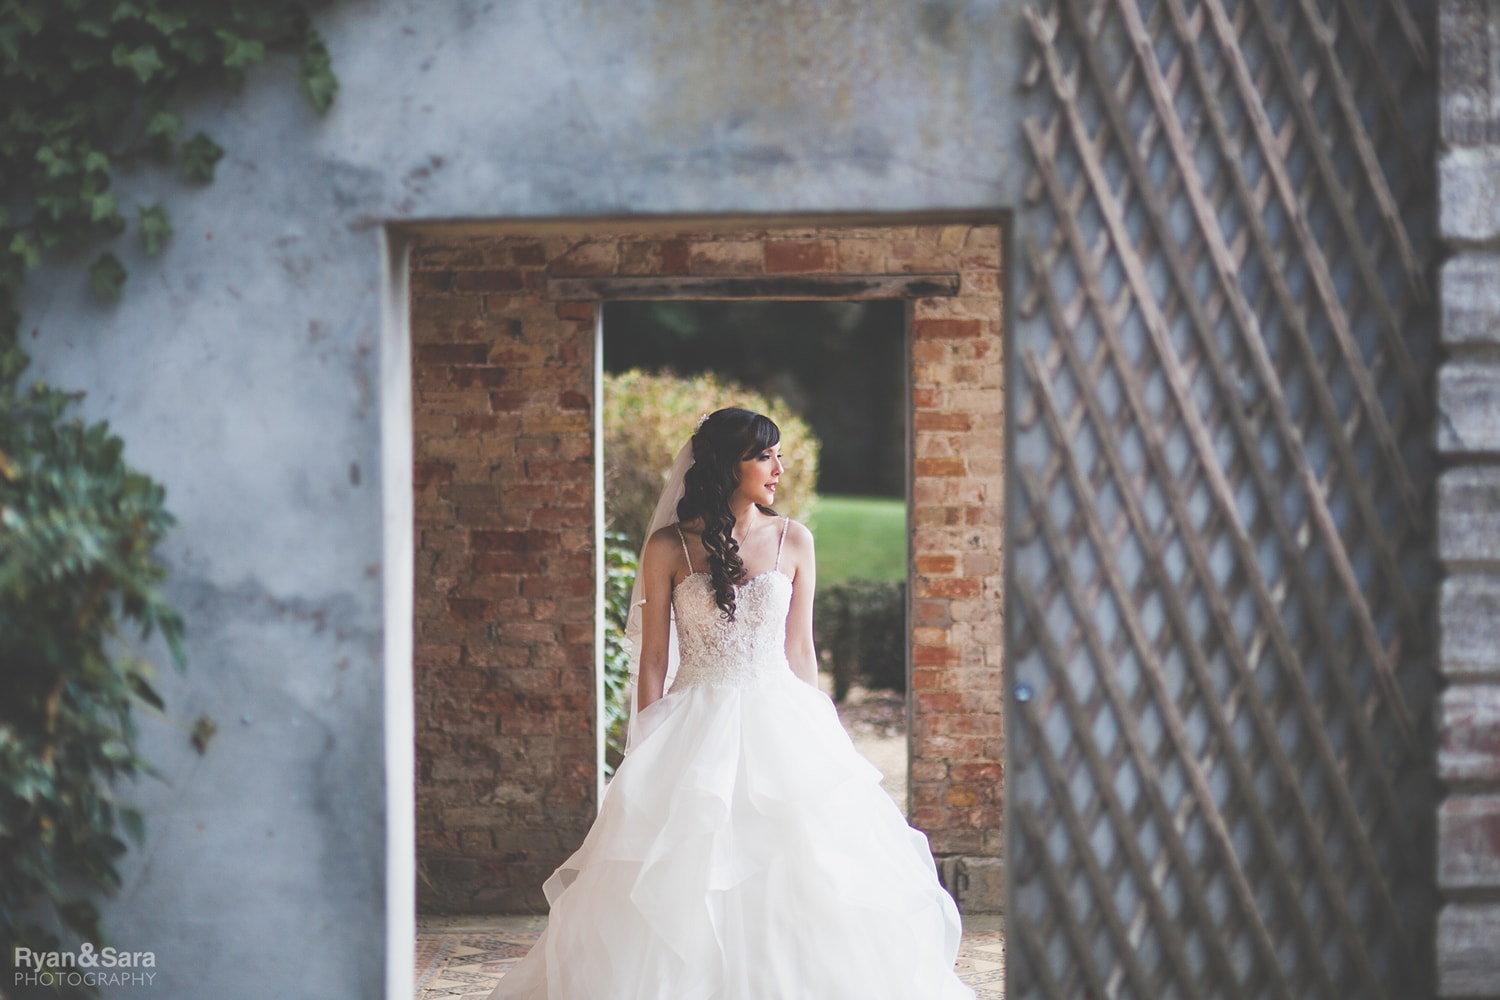 wed2b paige wedding dress, wedding, ettington park hotel